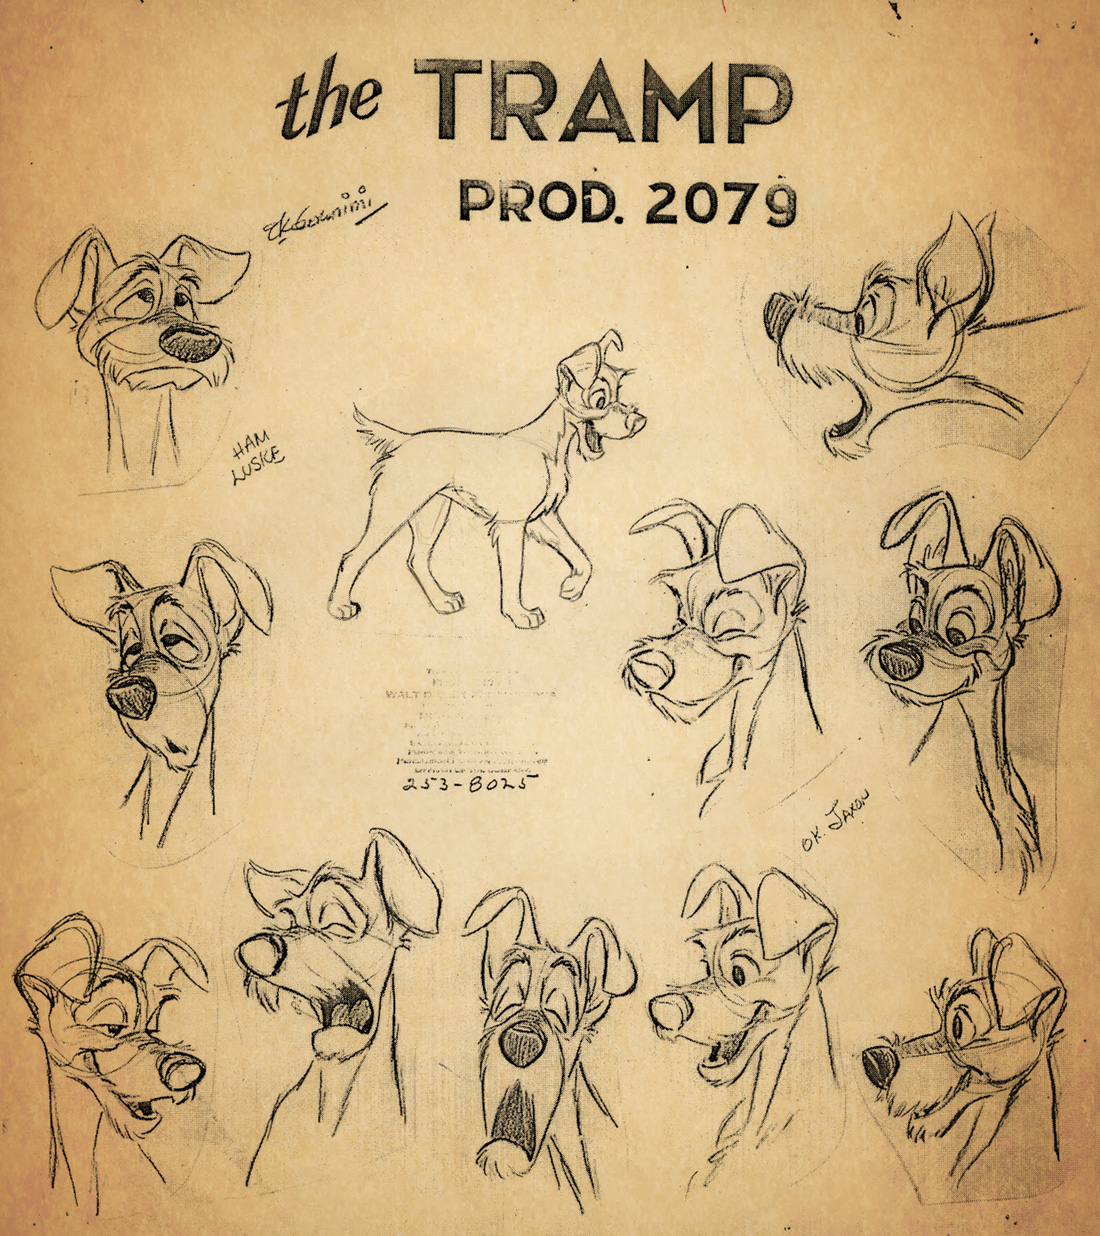 lady_and_the_tramp_disney_production_art_24.jpg